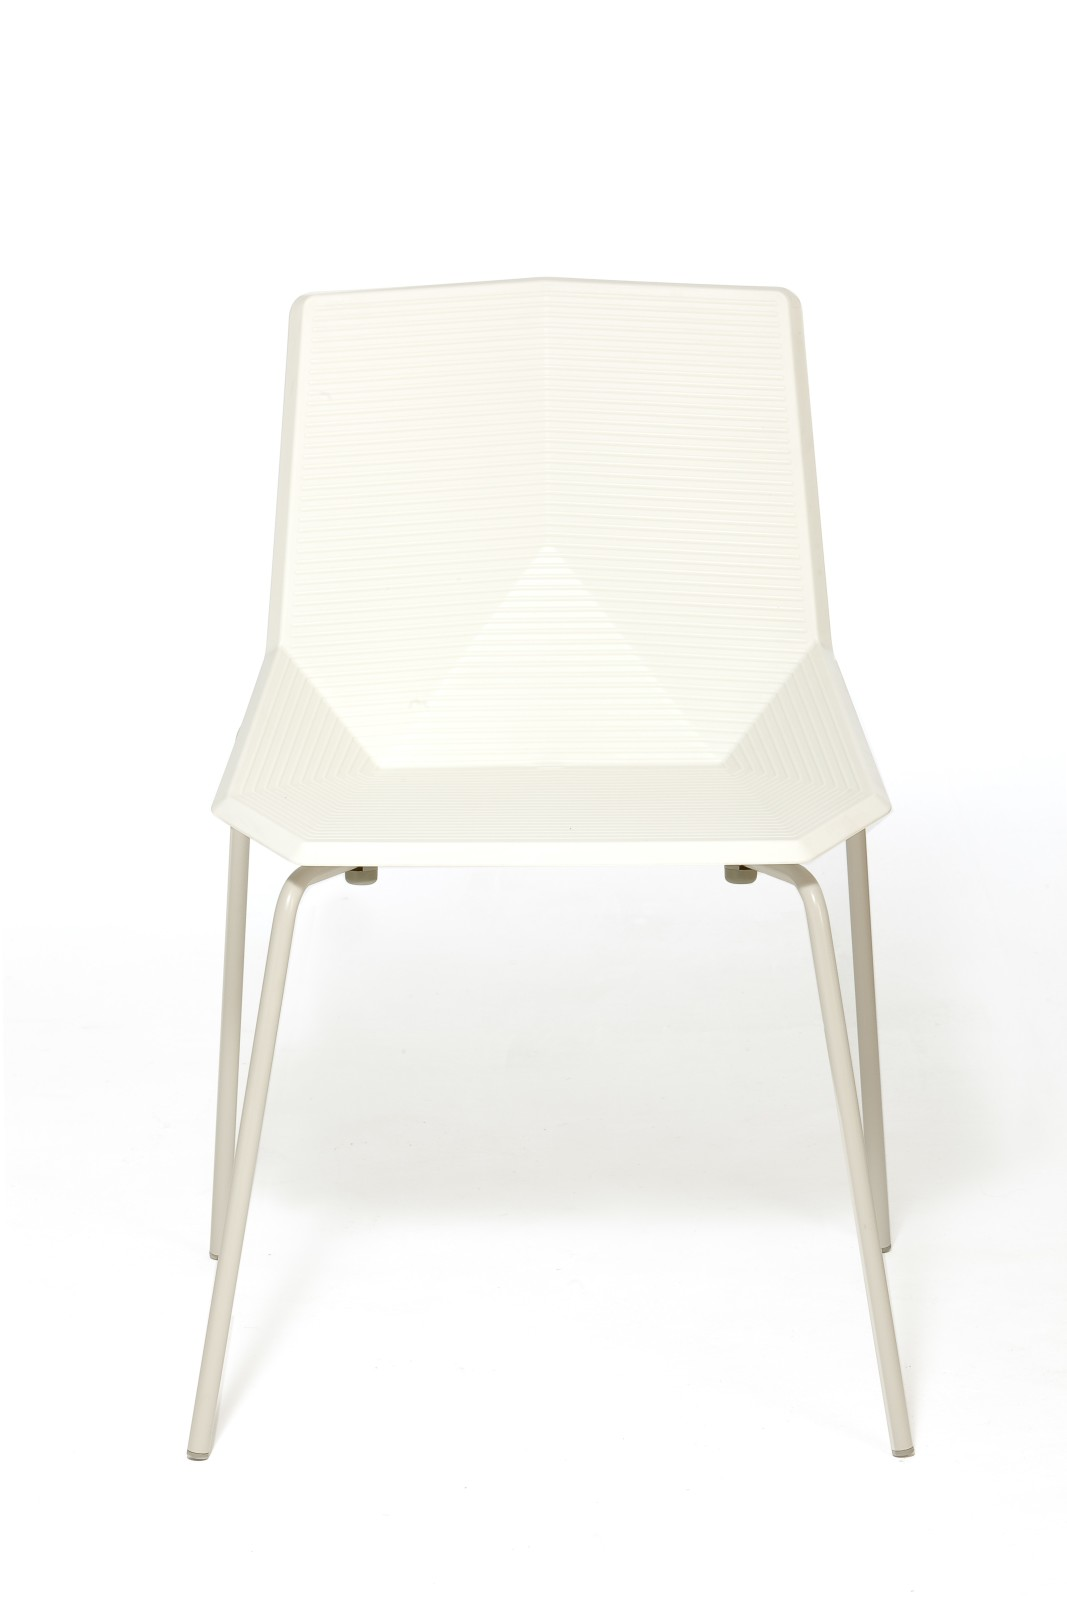 Green Eco Metal Dining Chair White Seat